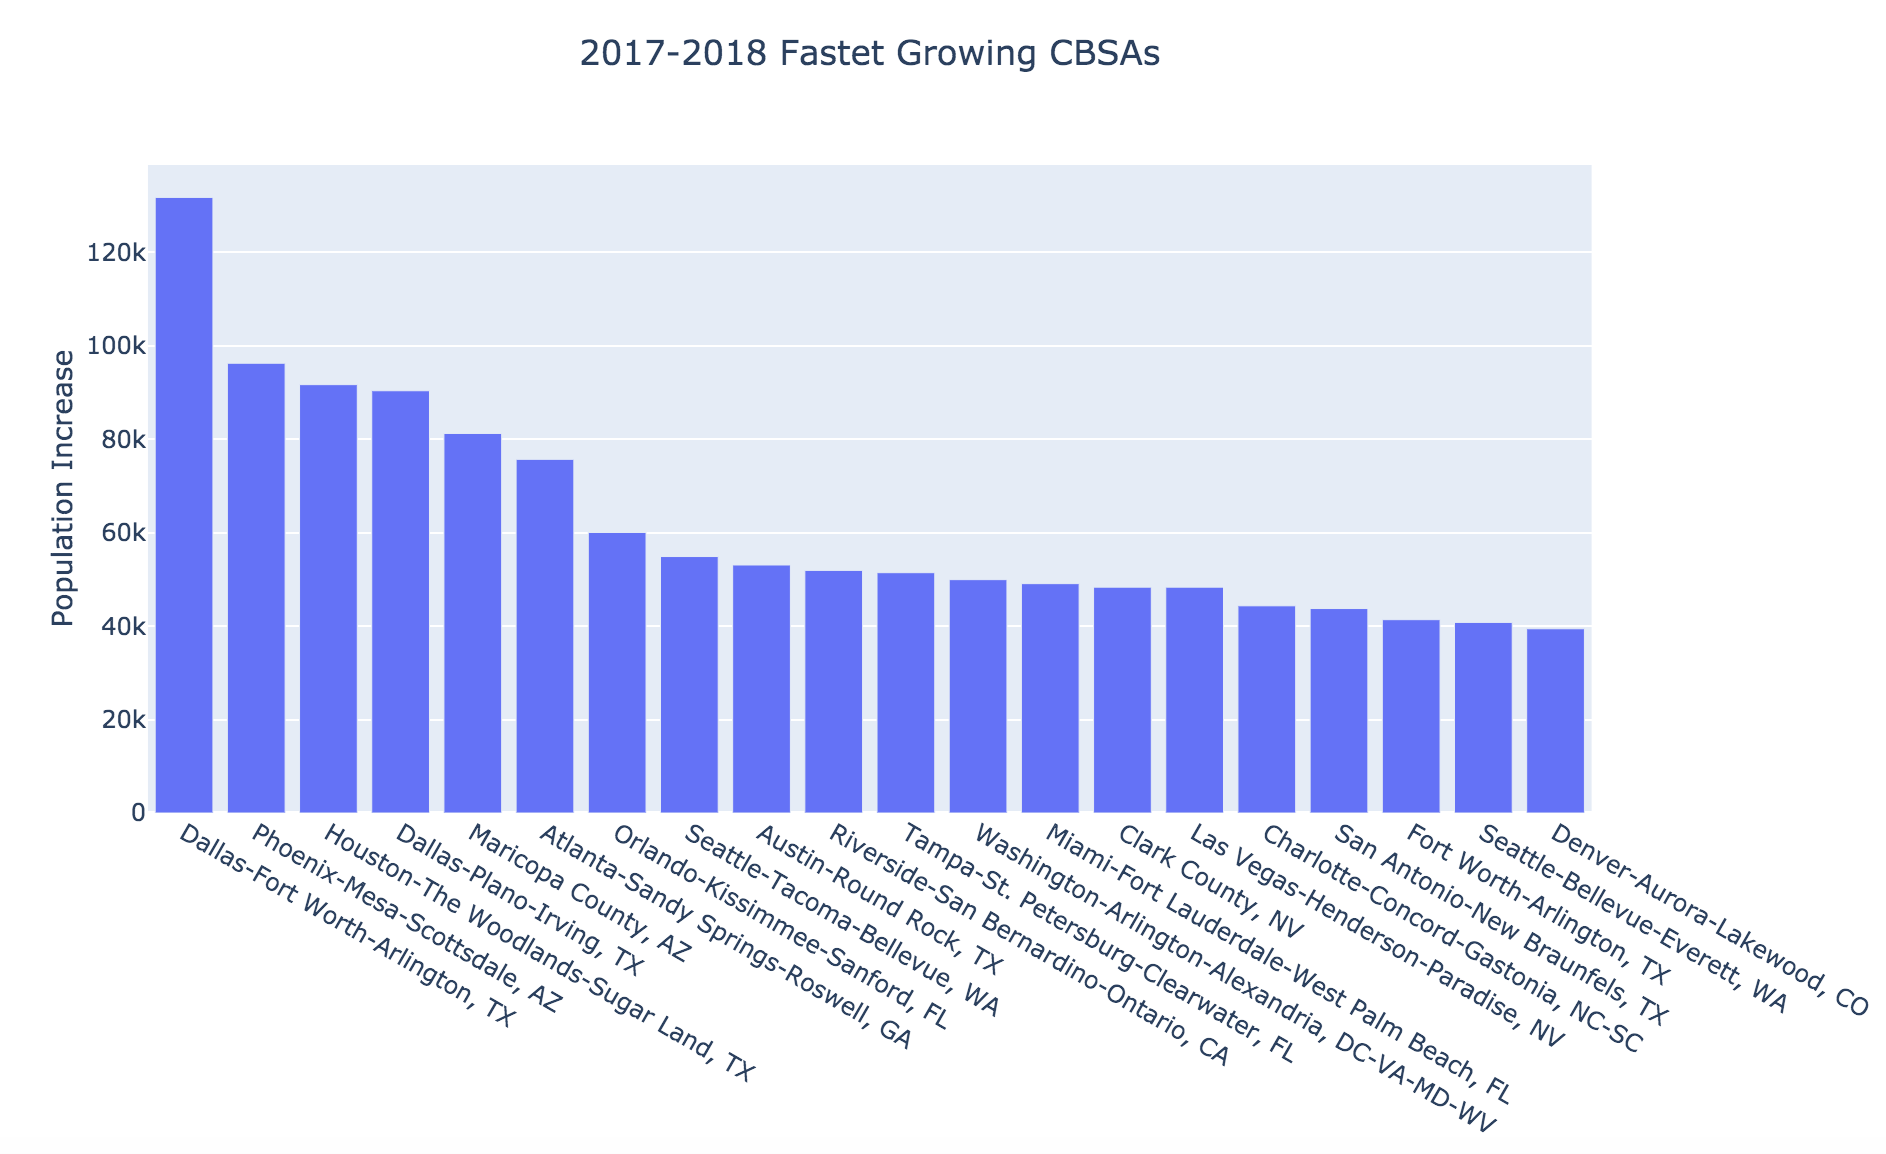 Fastest-Growing CBSAs